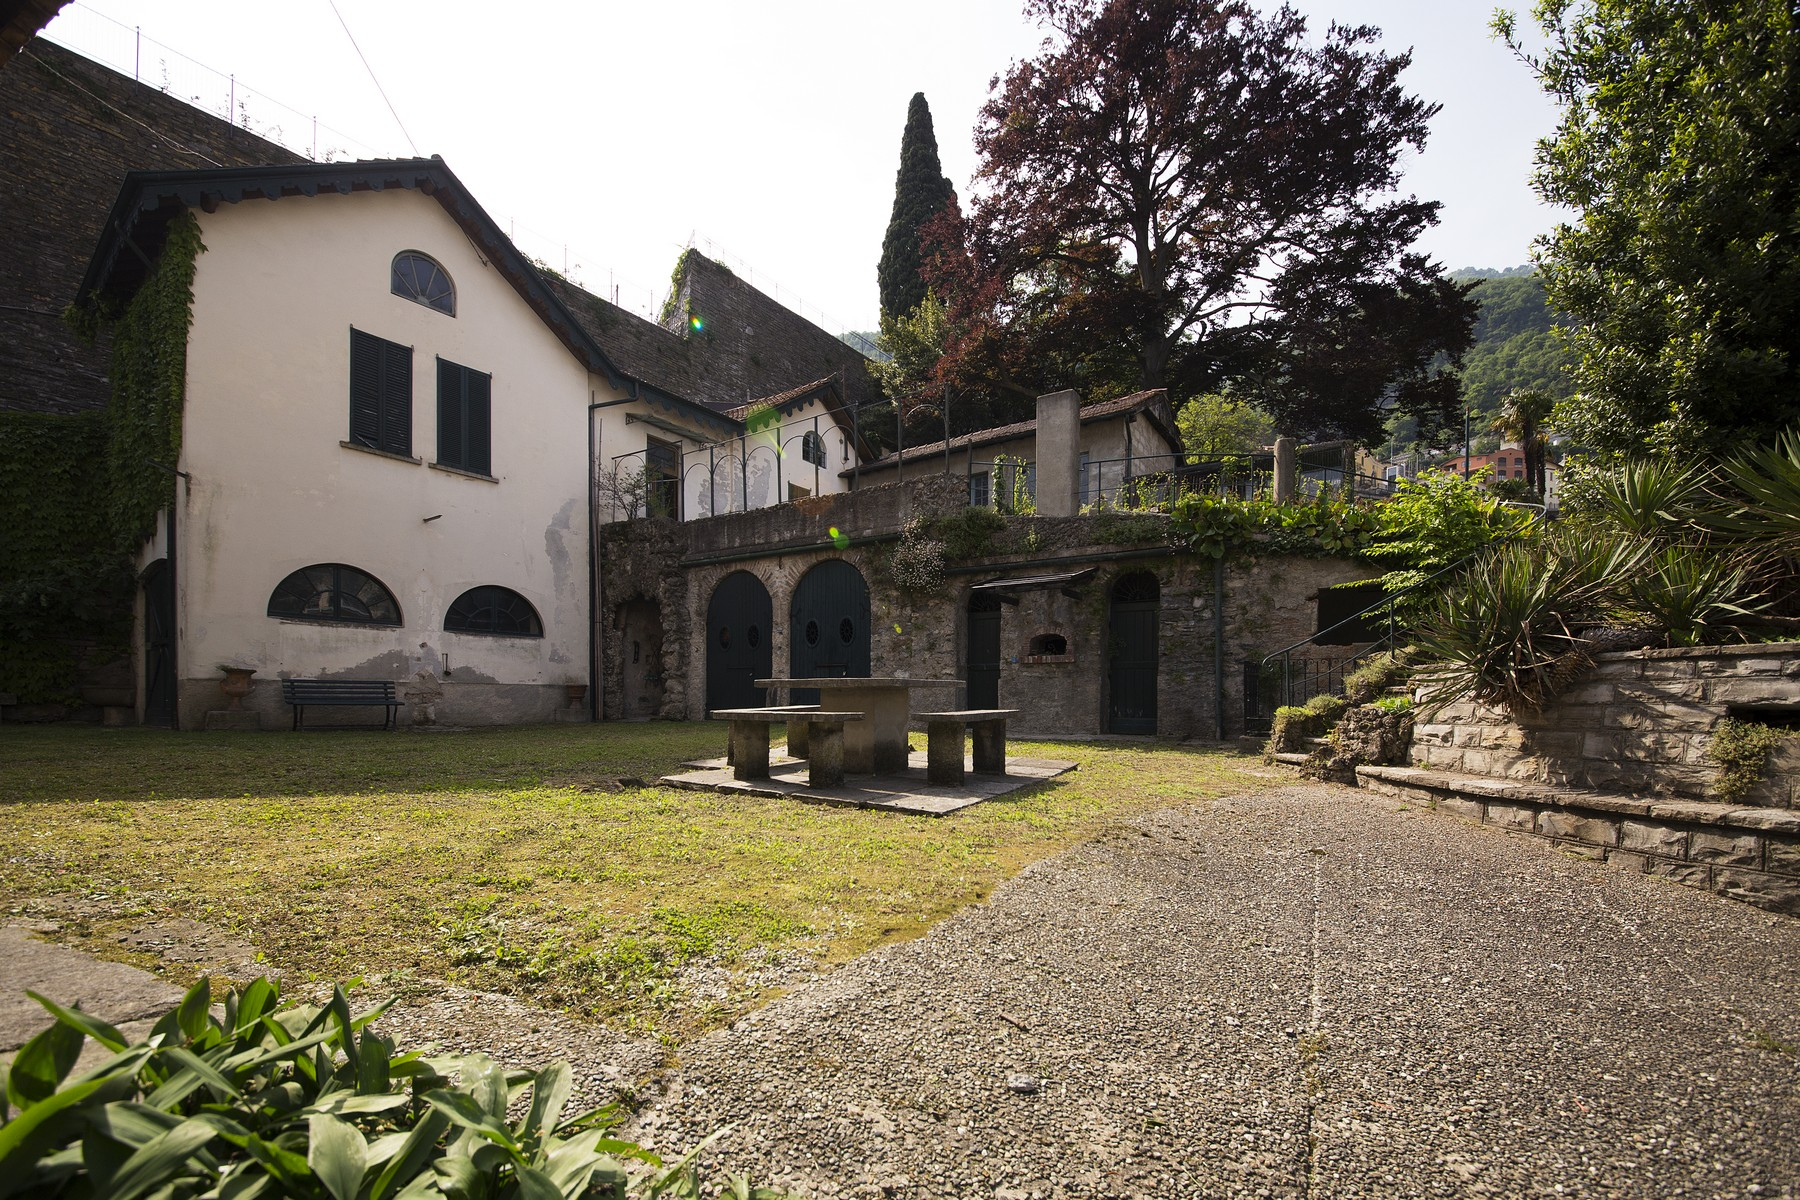 Maison unifamiliale pour l Vente à Charming property close to the shore of the lake Via Raschi Moltrasio, Como 22010 Italie